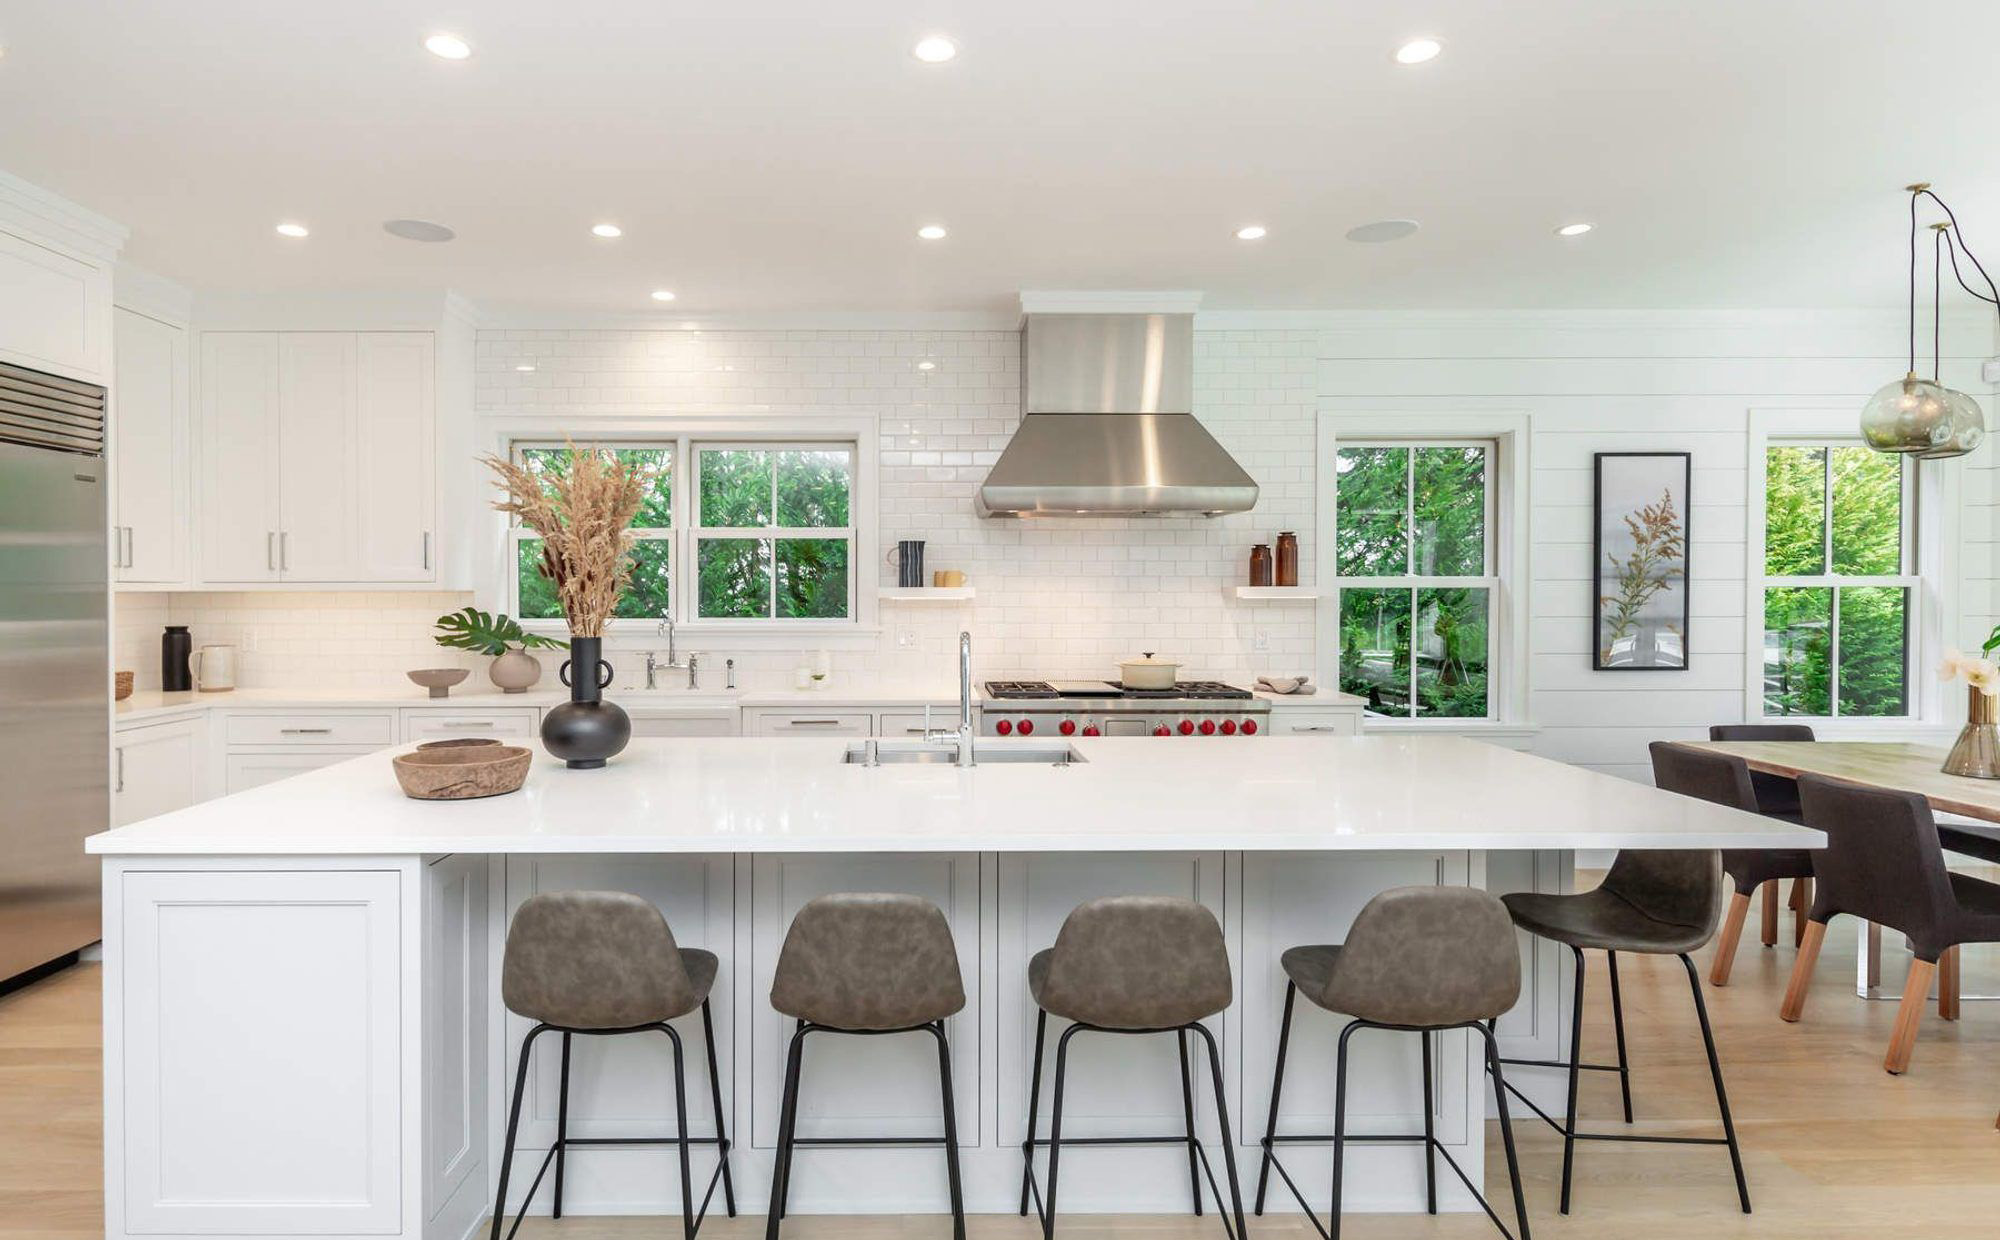 Large kitchen with an open floor plan featuring a center island and lots of seating.